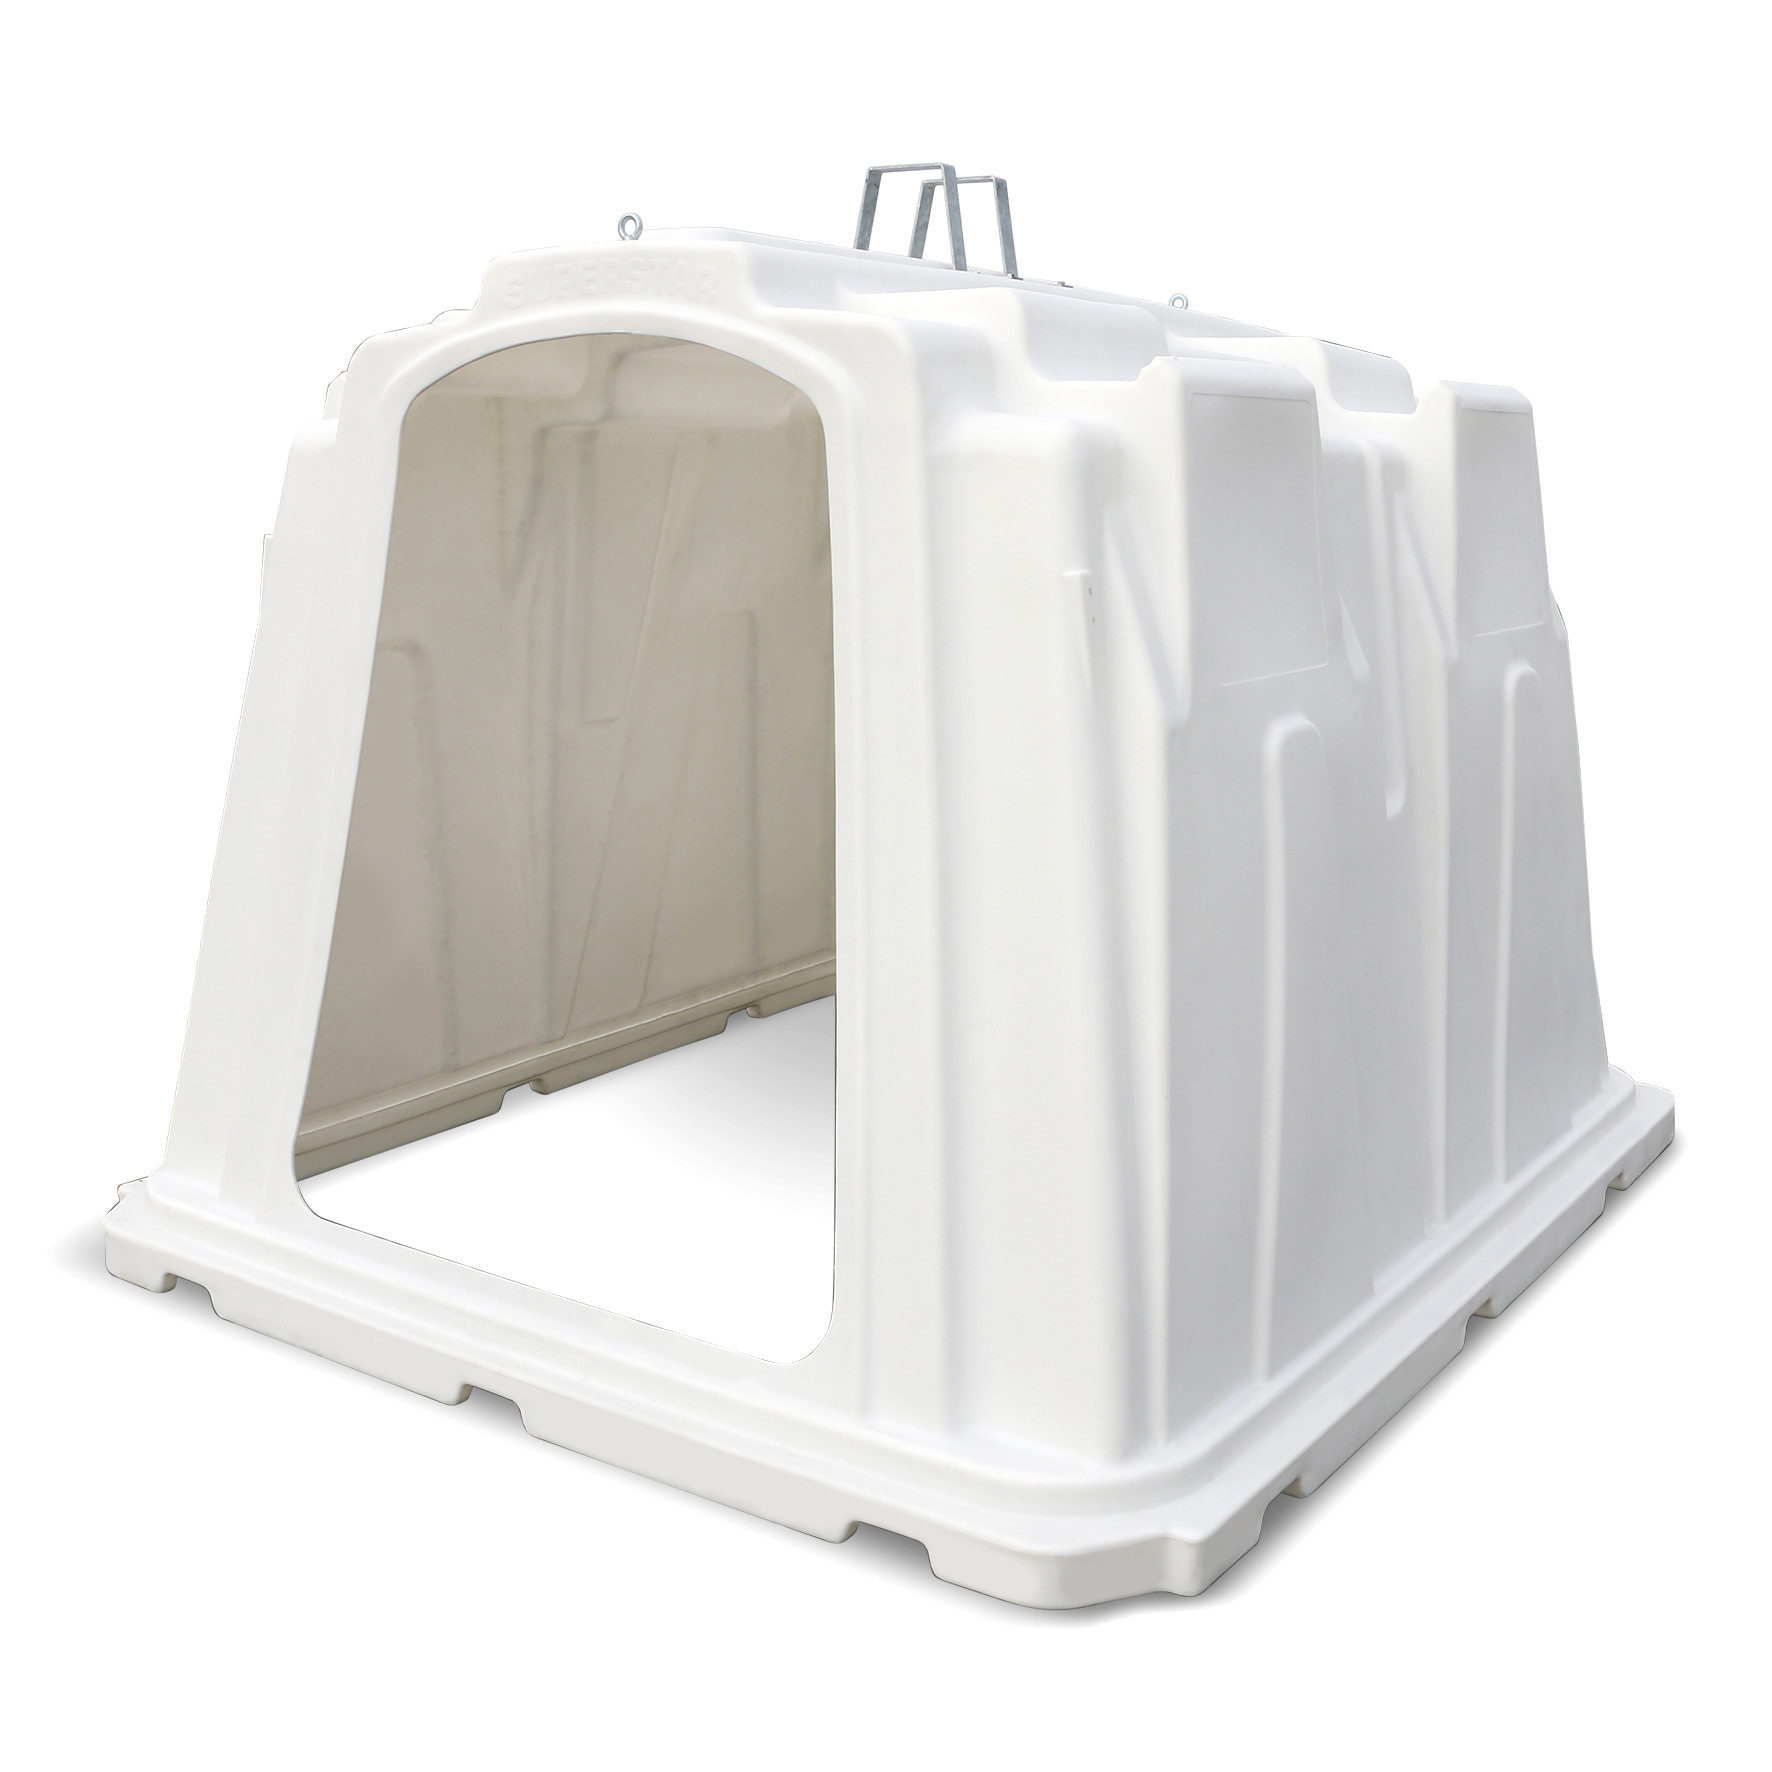 SUPERSTAR One-Piece HDPE Hutch For 5 Calves